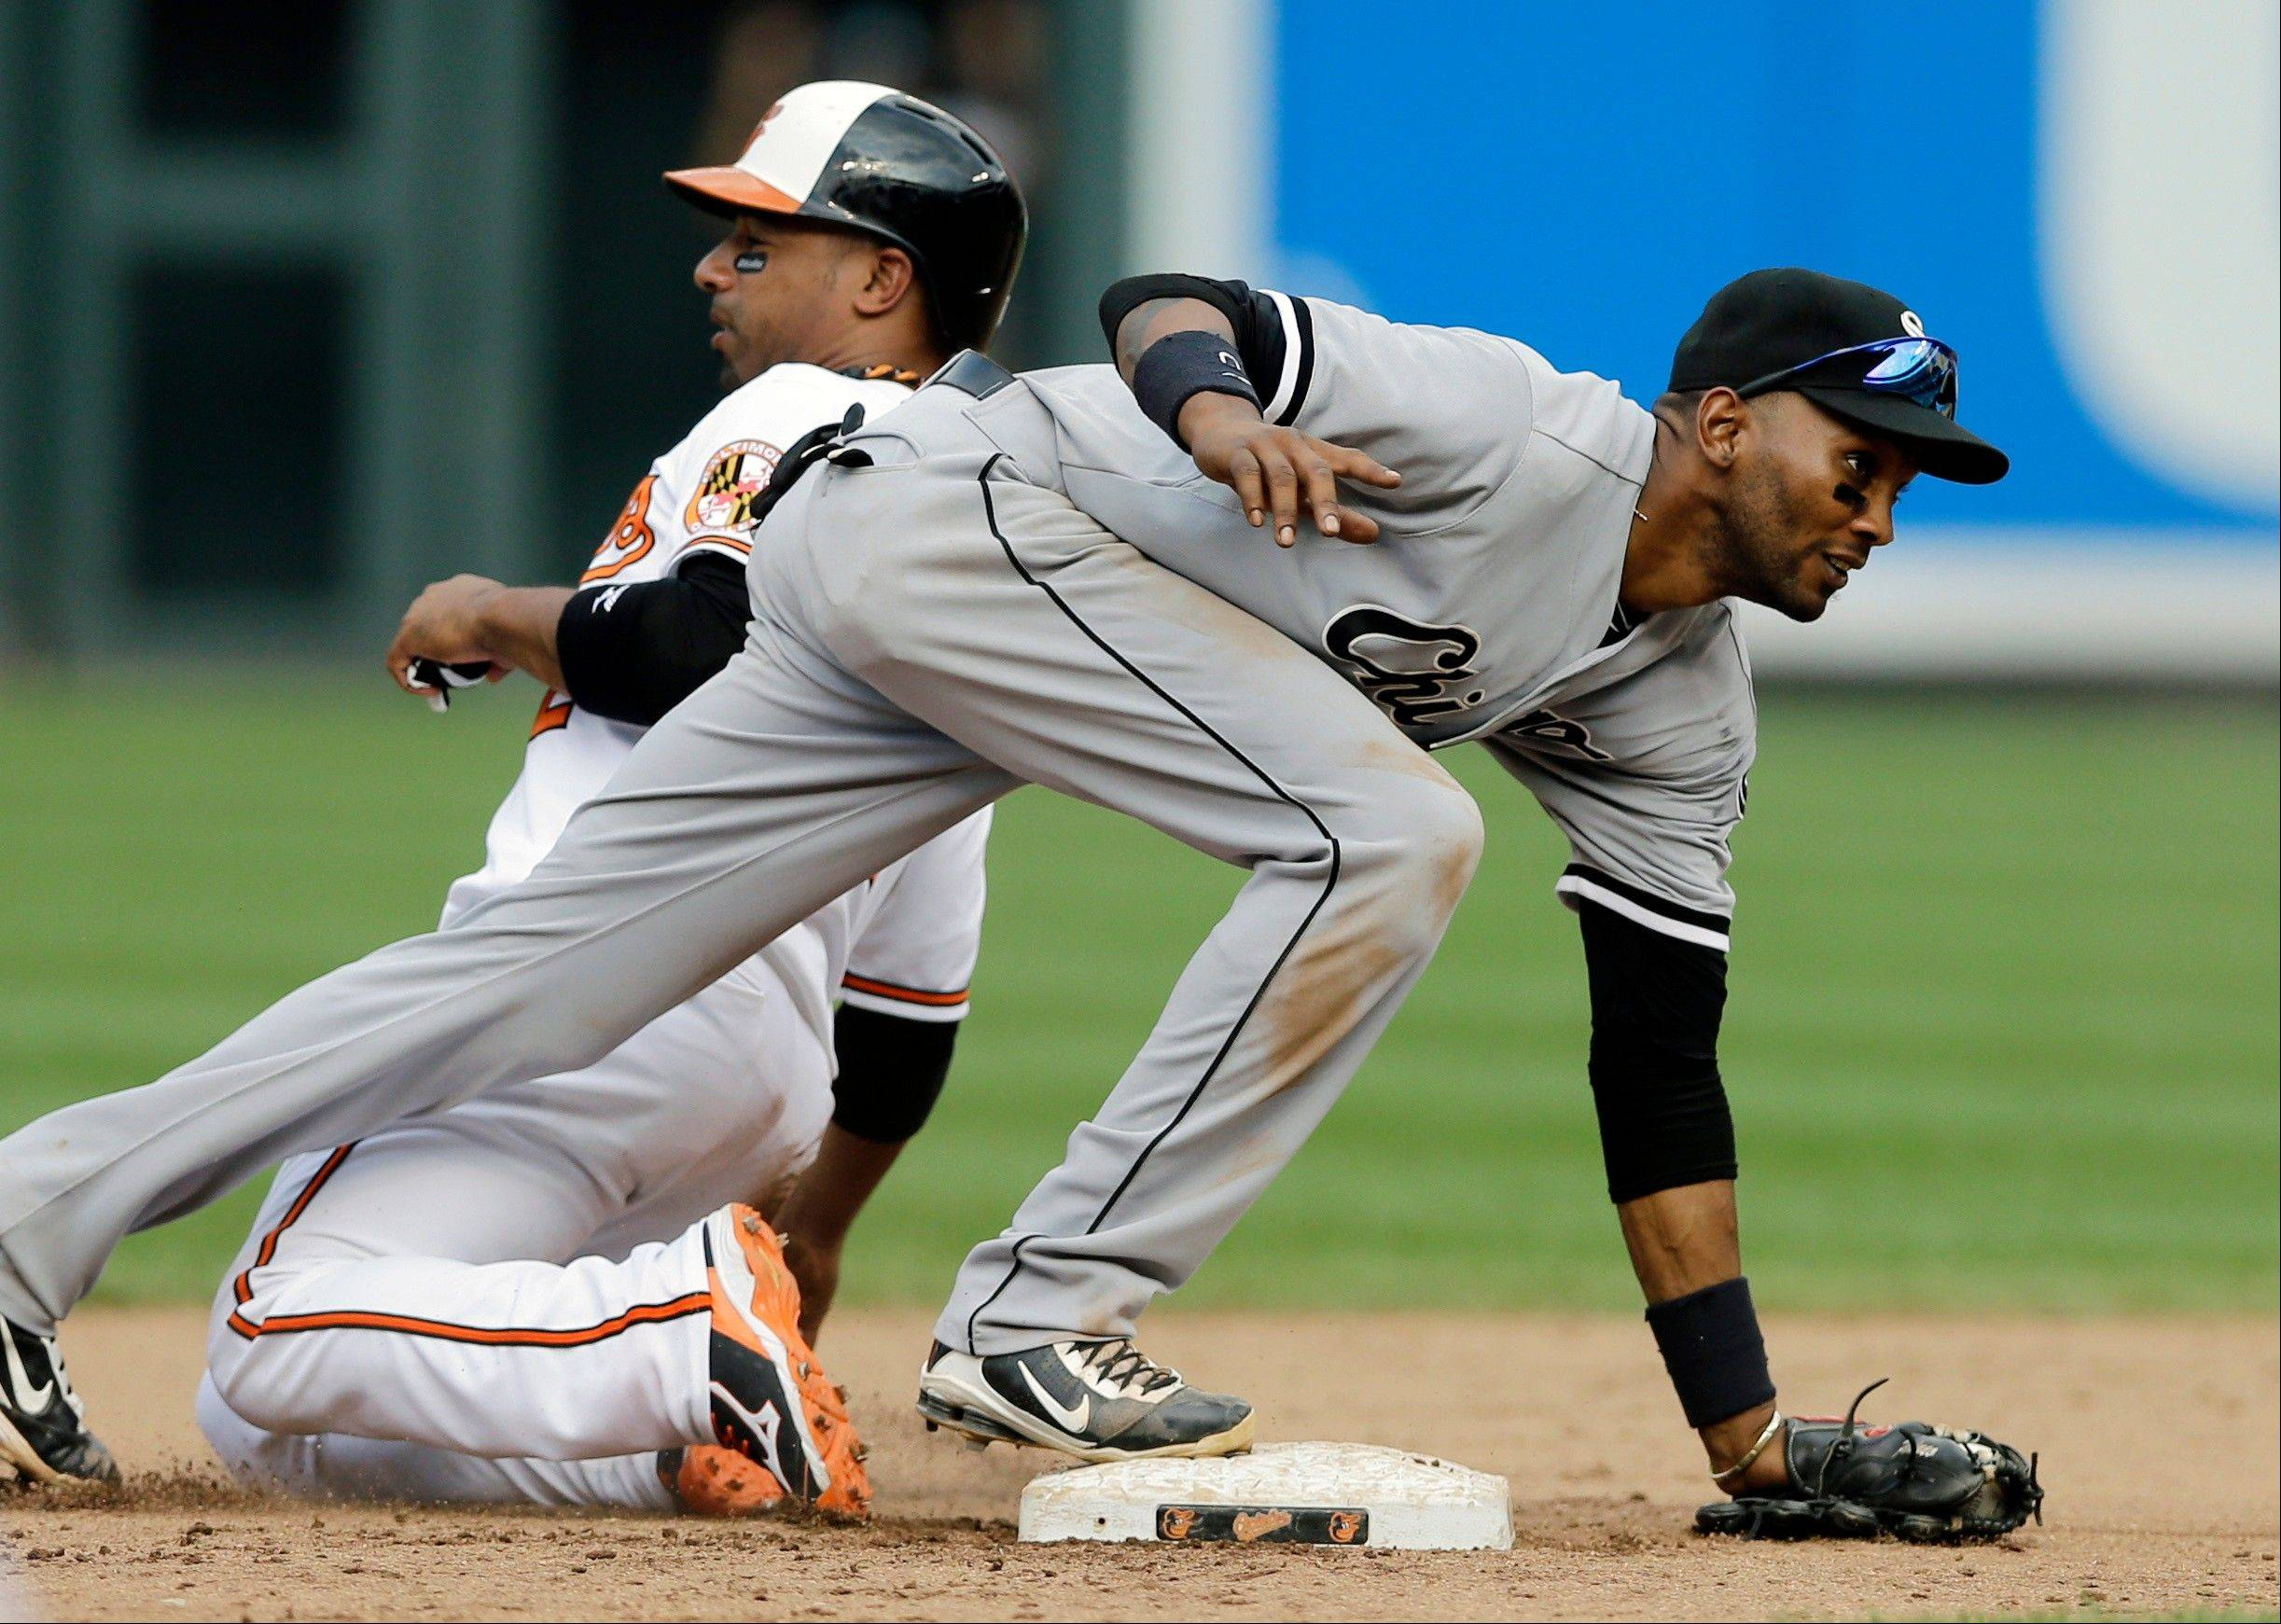 Chicago White Sox shortstop Alexei Ramirez, front, keeps his balance after forcing out Baltimore Orioles' Alexi Casilla at second base on a ground ball by Ryan Flaherty on Sept. 8.